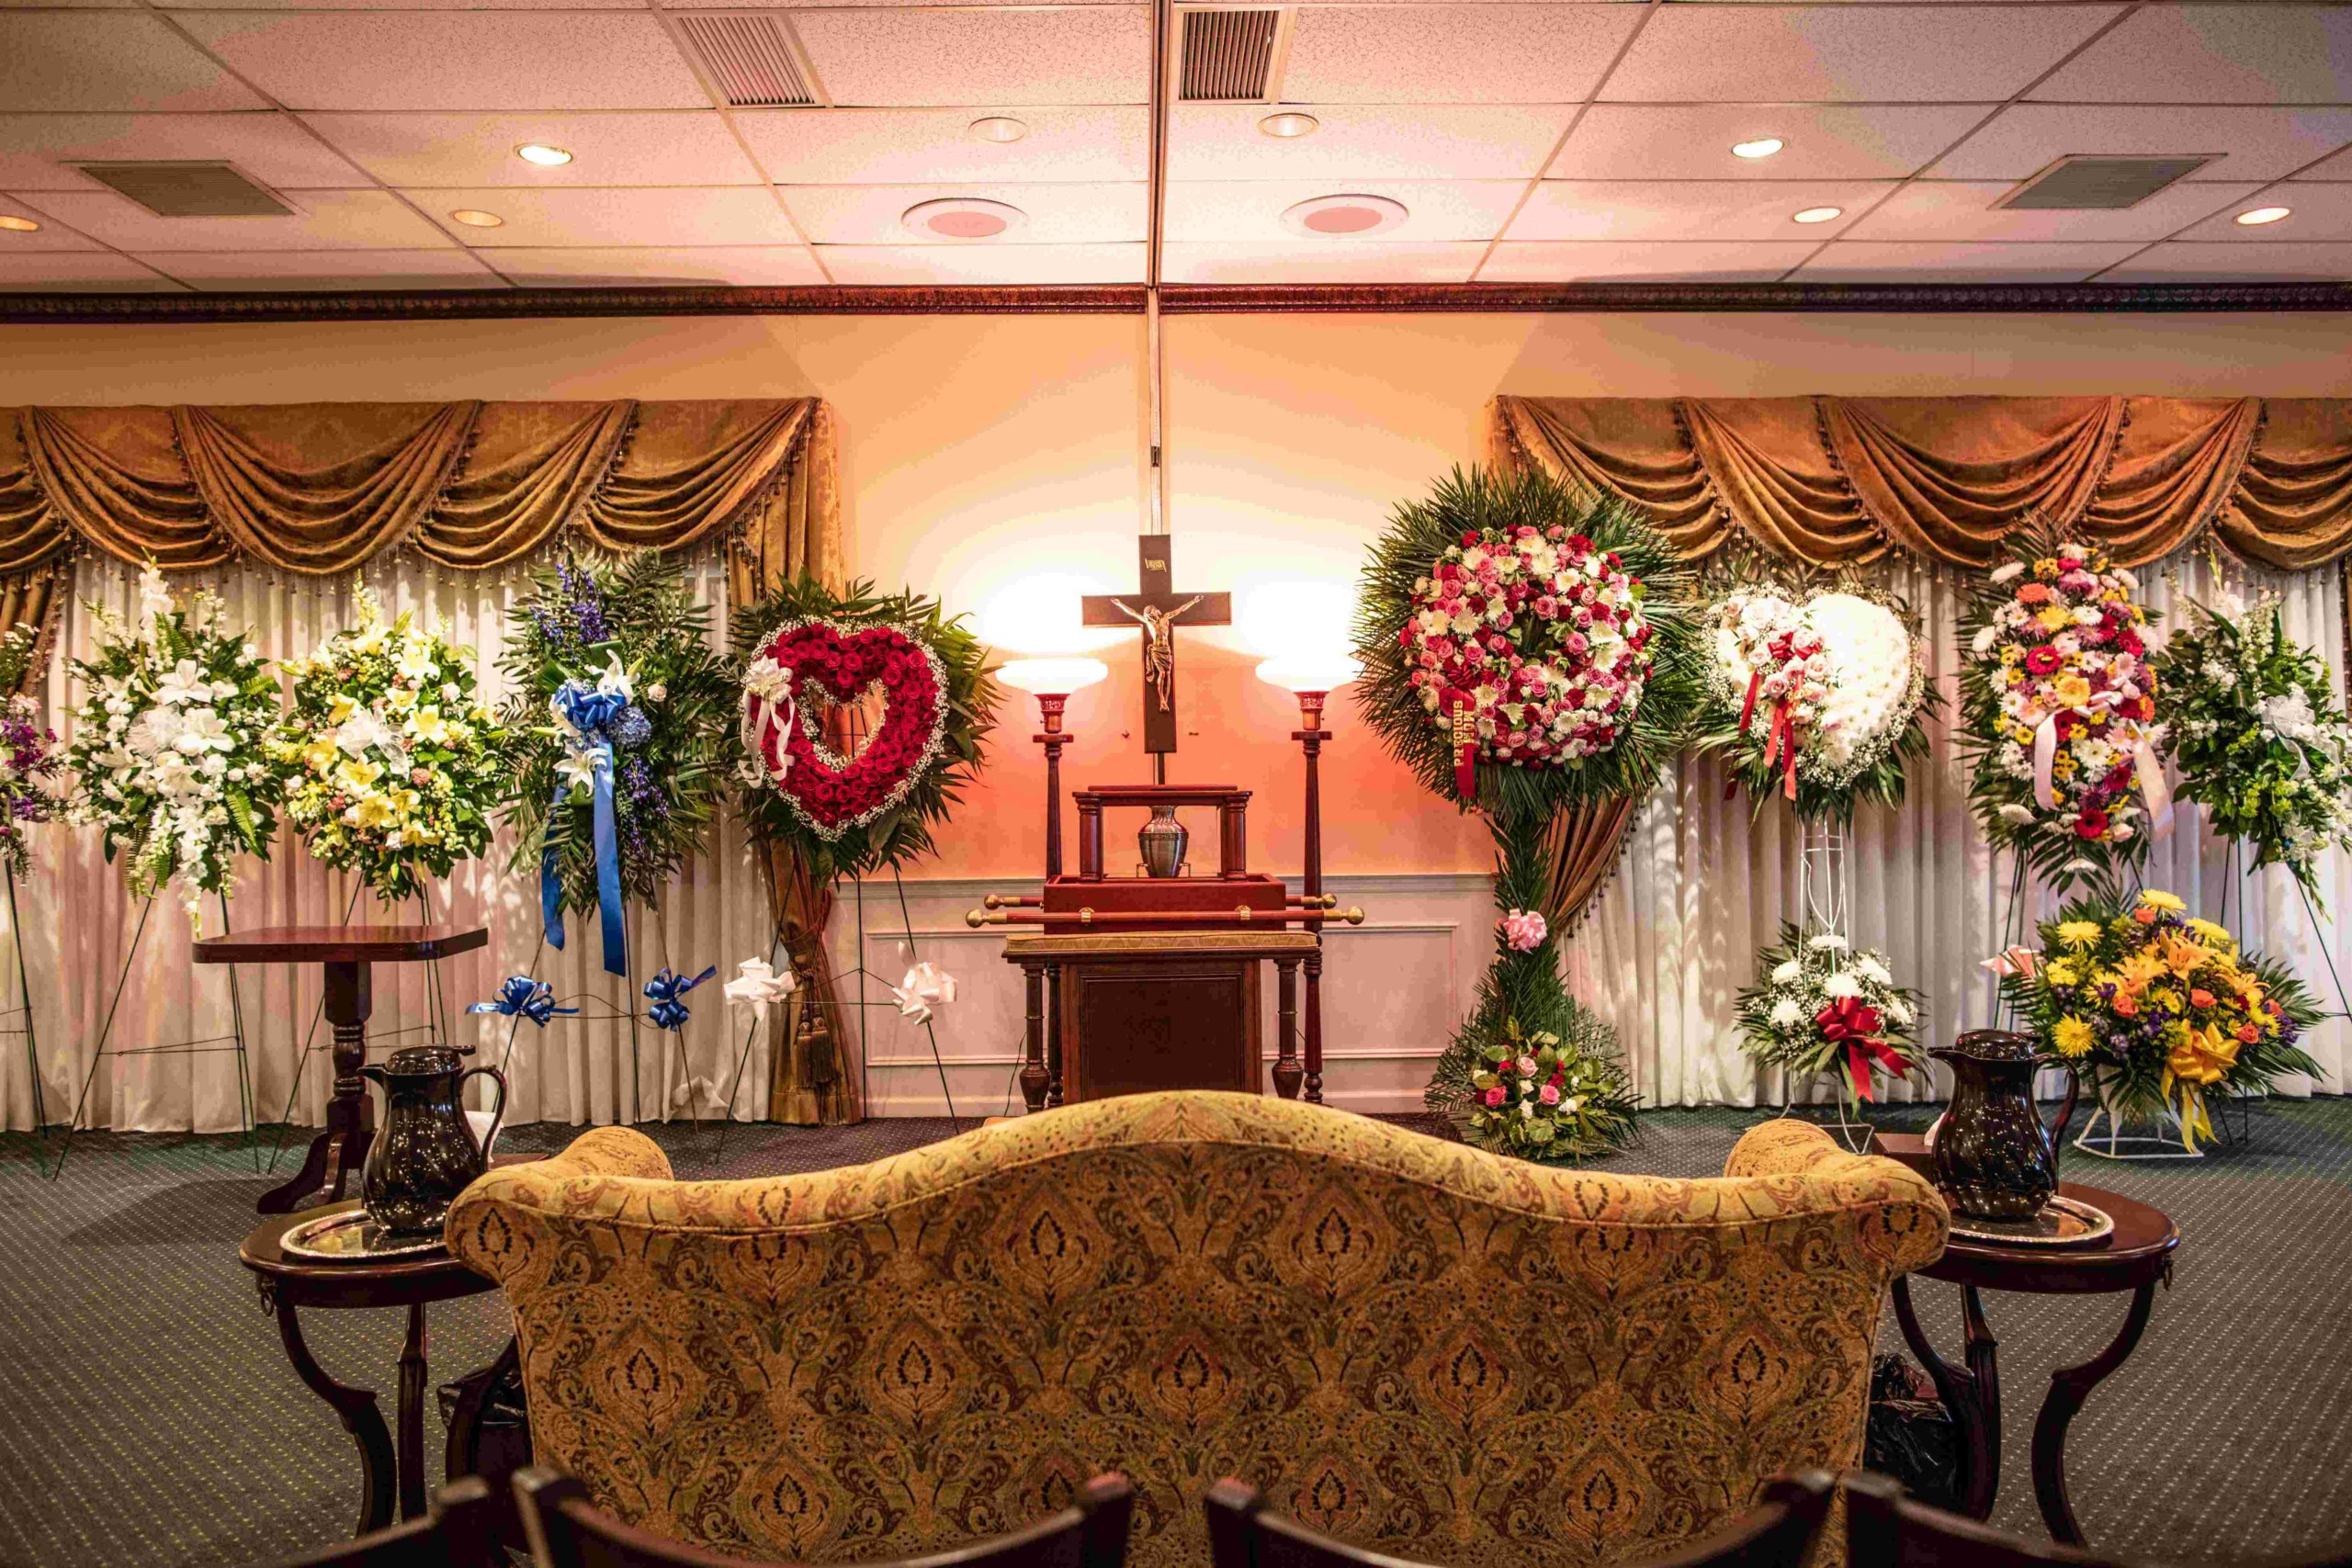 Why is the Demand for Cremation Services on the Rise?